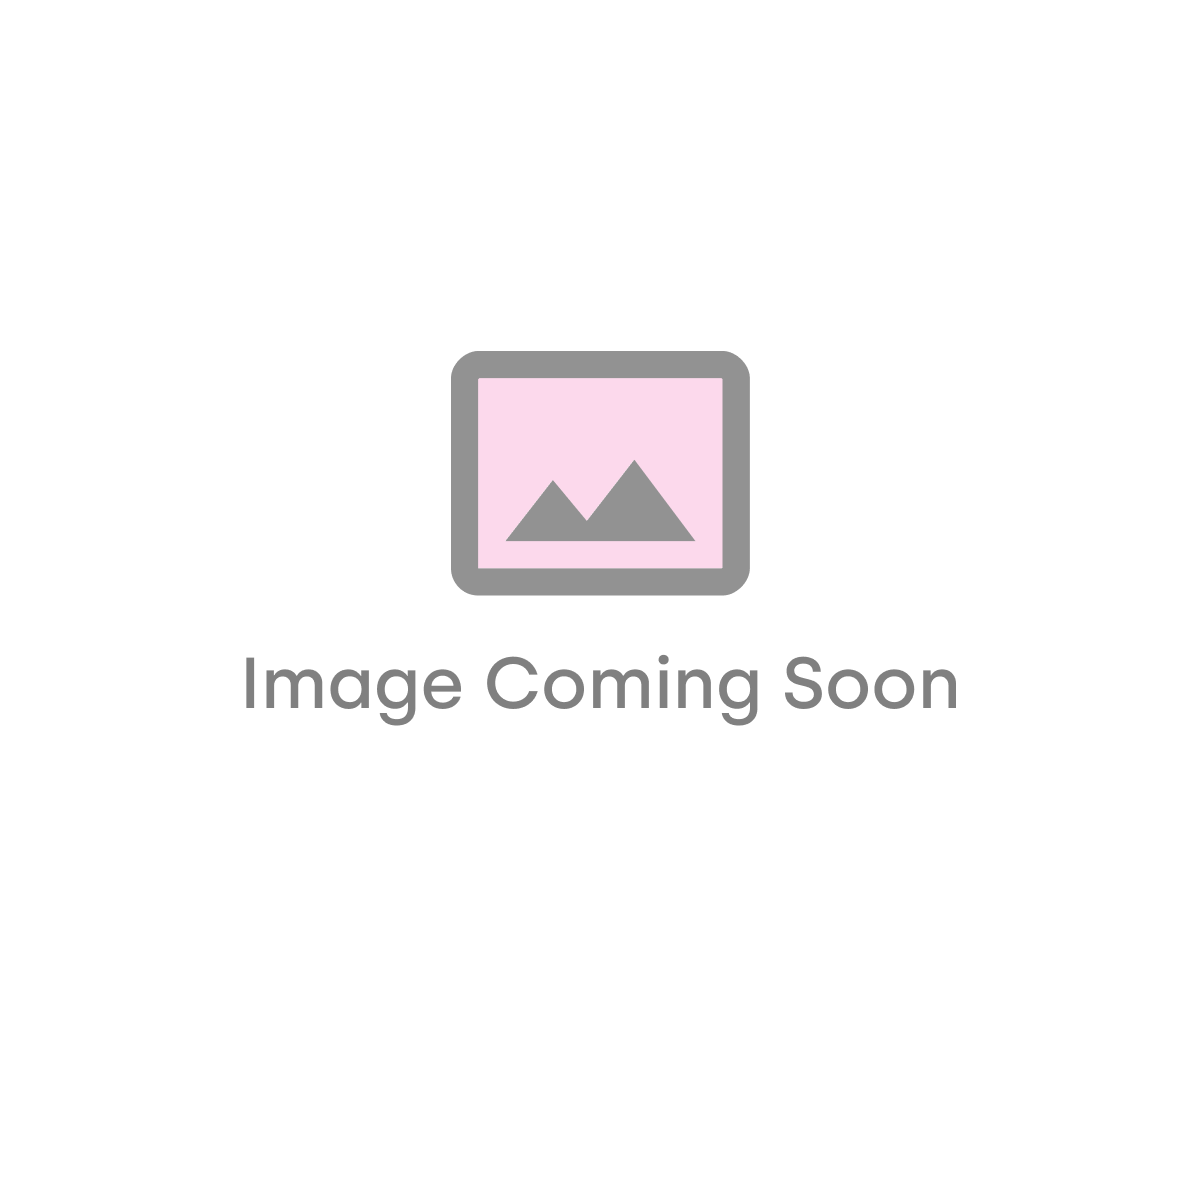 Kiimat Aqua 1000mm Wetroom Panel - Mirror Finish (18723)